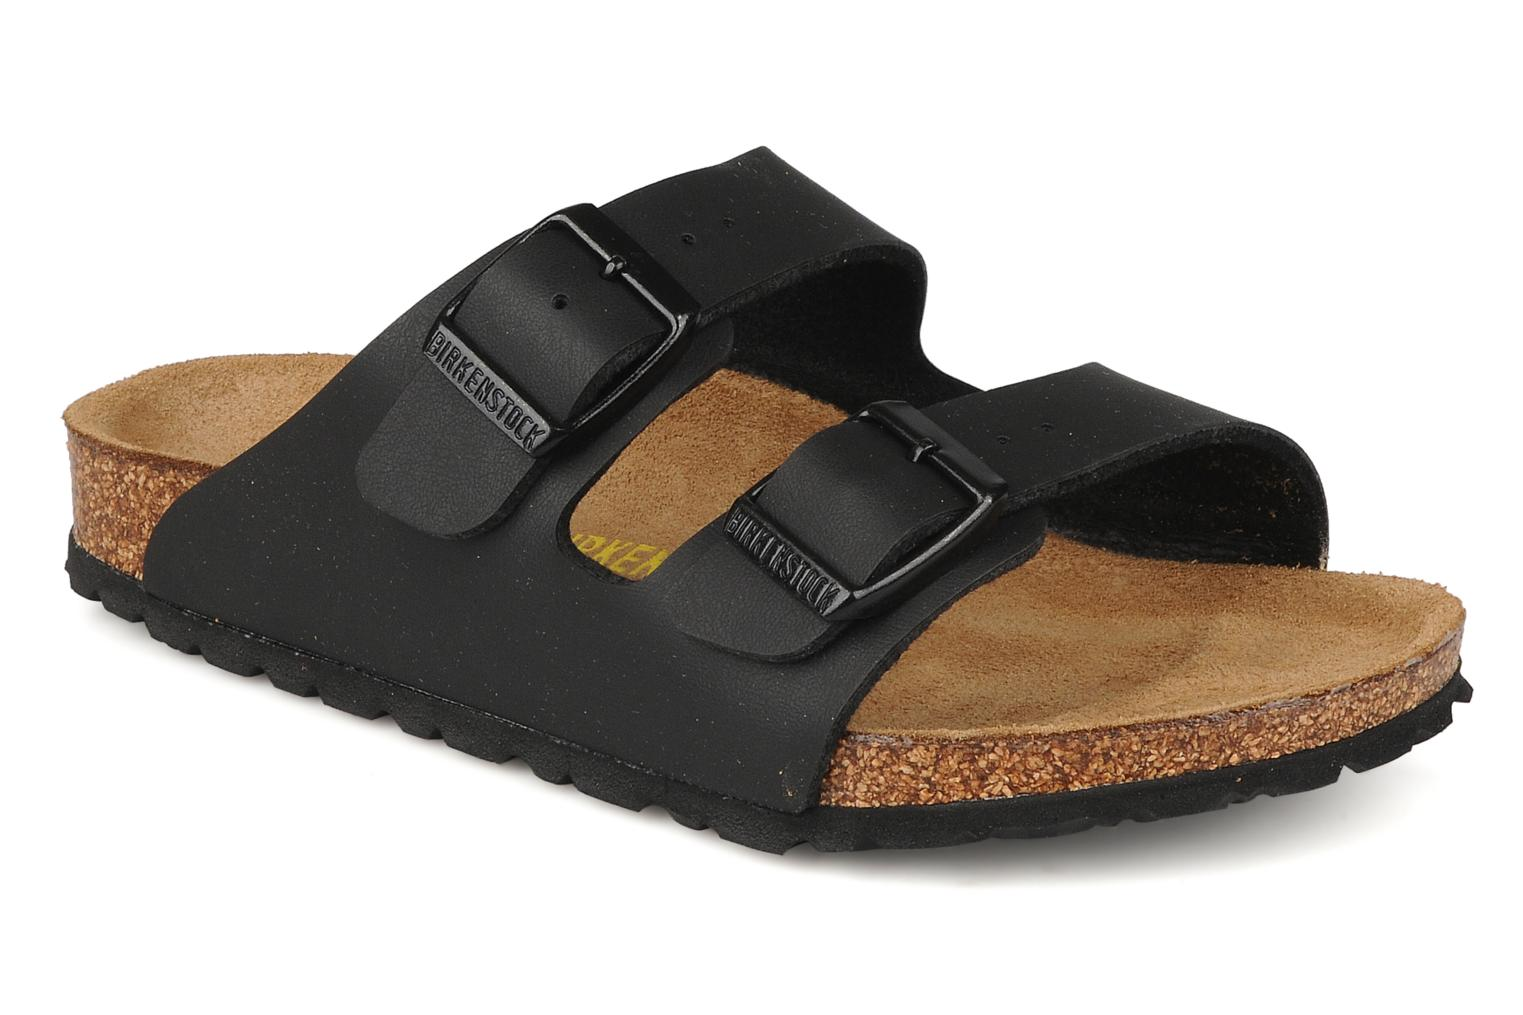 birkenstock homme sarenza men sandals. Black Bedroom Furniture Sets. Home Design Ideas